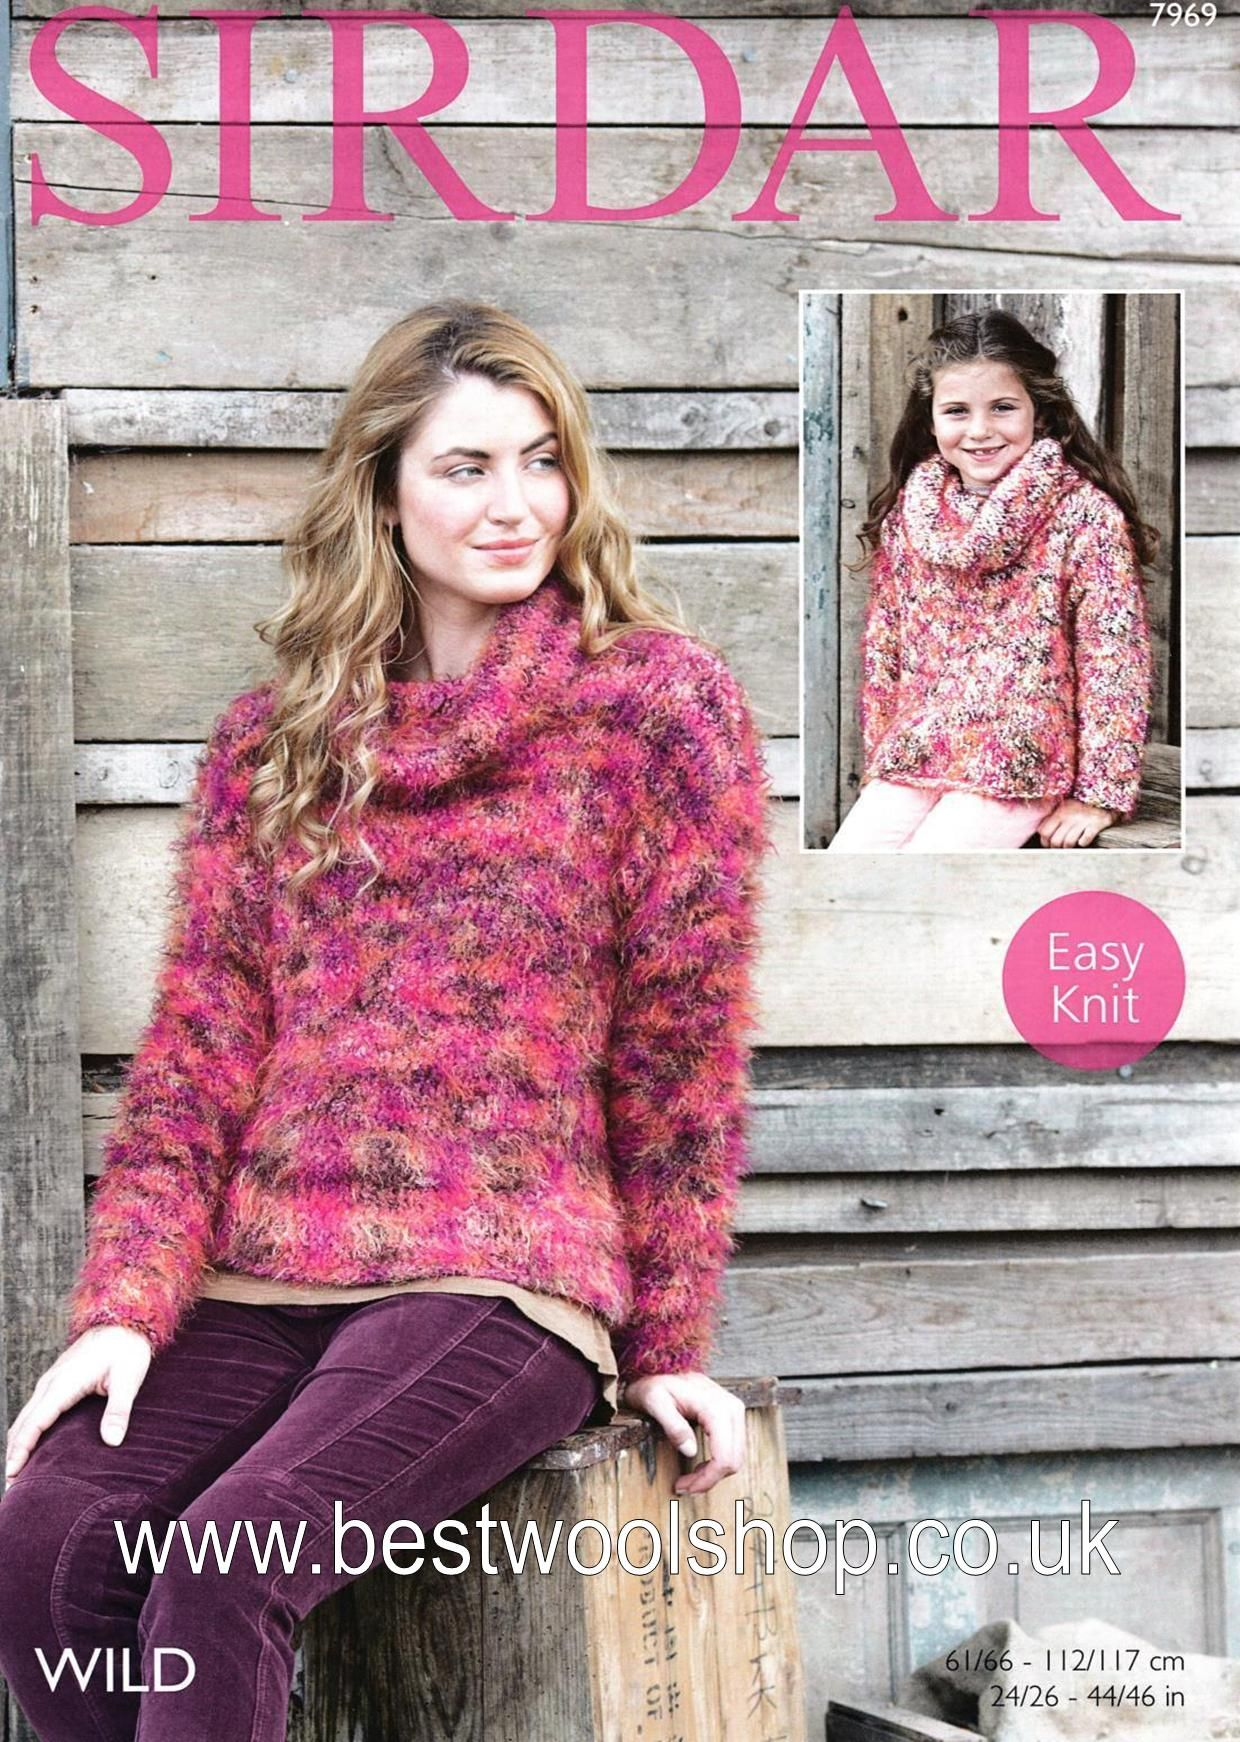 7969 Sirdar Wild Super Chunky Ladies Girls Sweater Knitting Pattern To Fit Chest 24 To 46